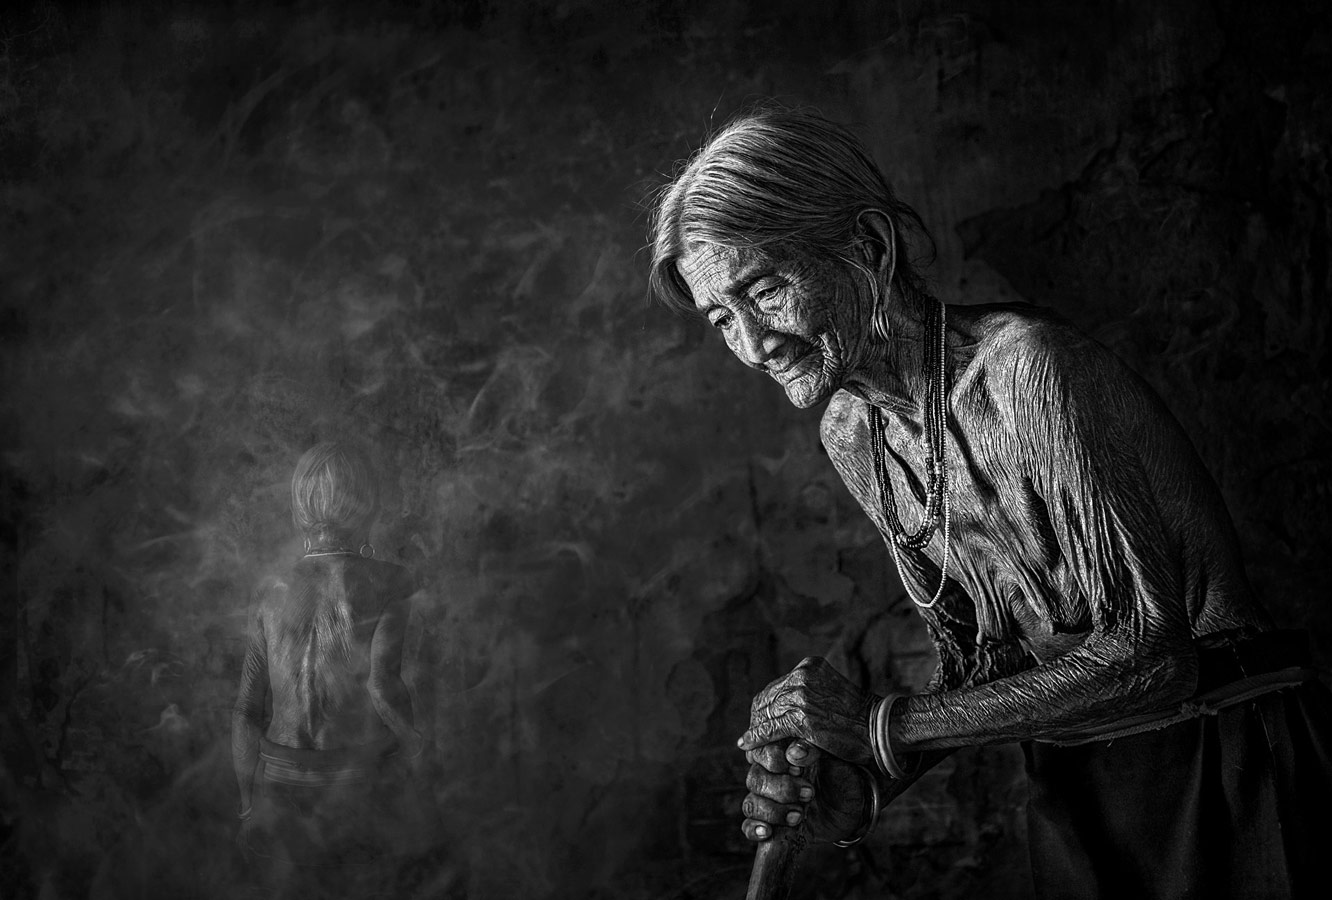 A Place Left to Return, © Tien Dat Dao, Vietnam, Campina Exhibitions Bronze Medal, Onyx International Exhibition of Photography